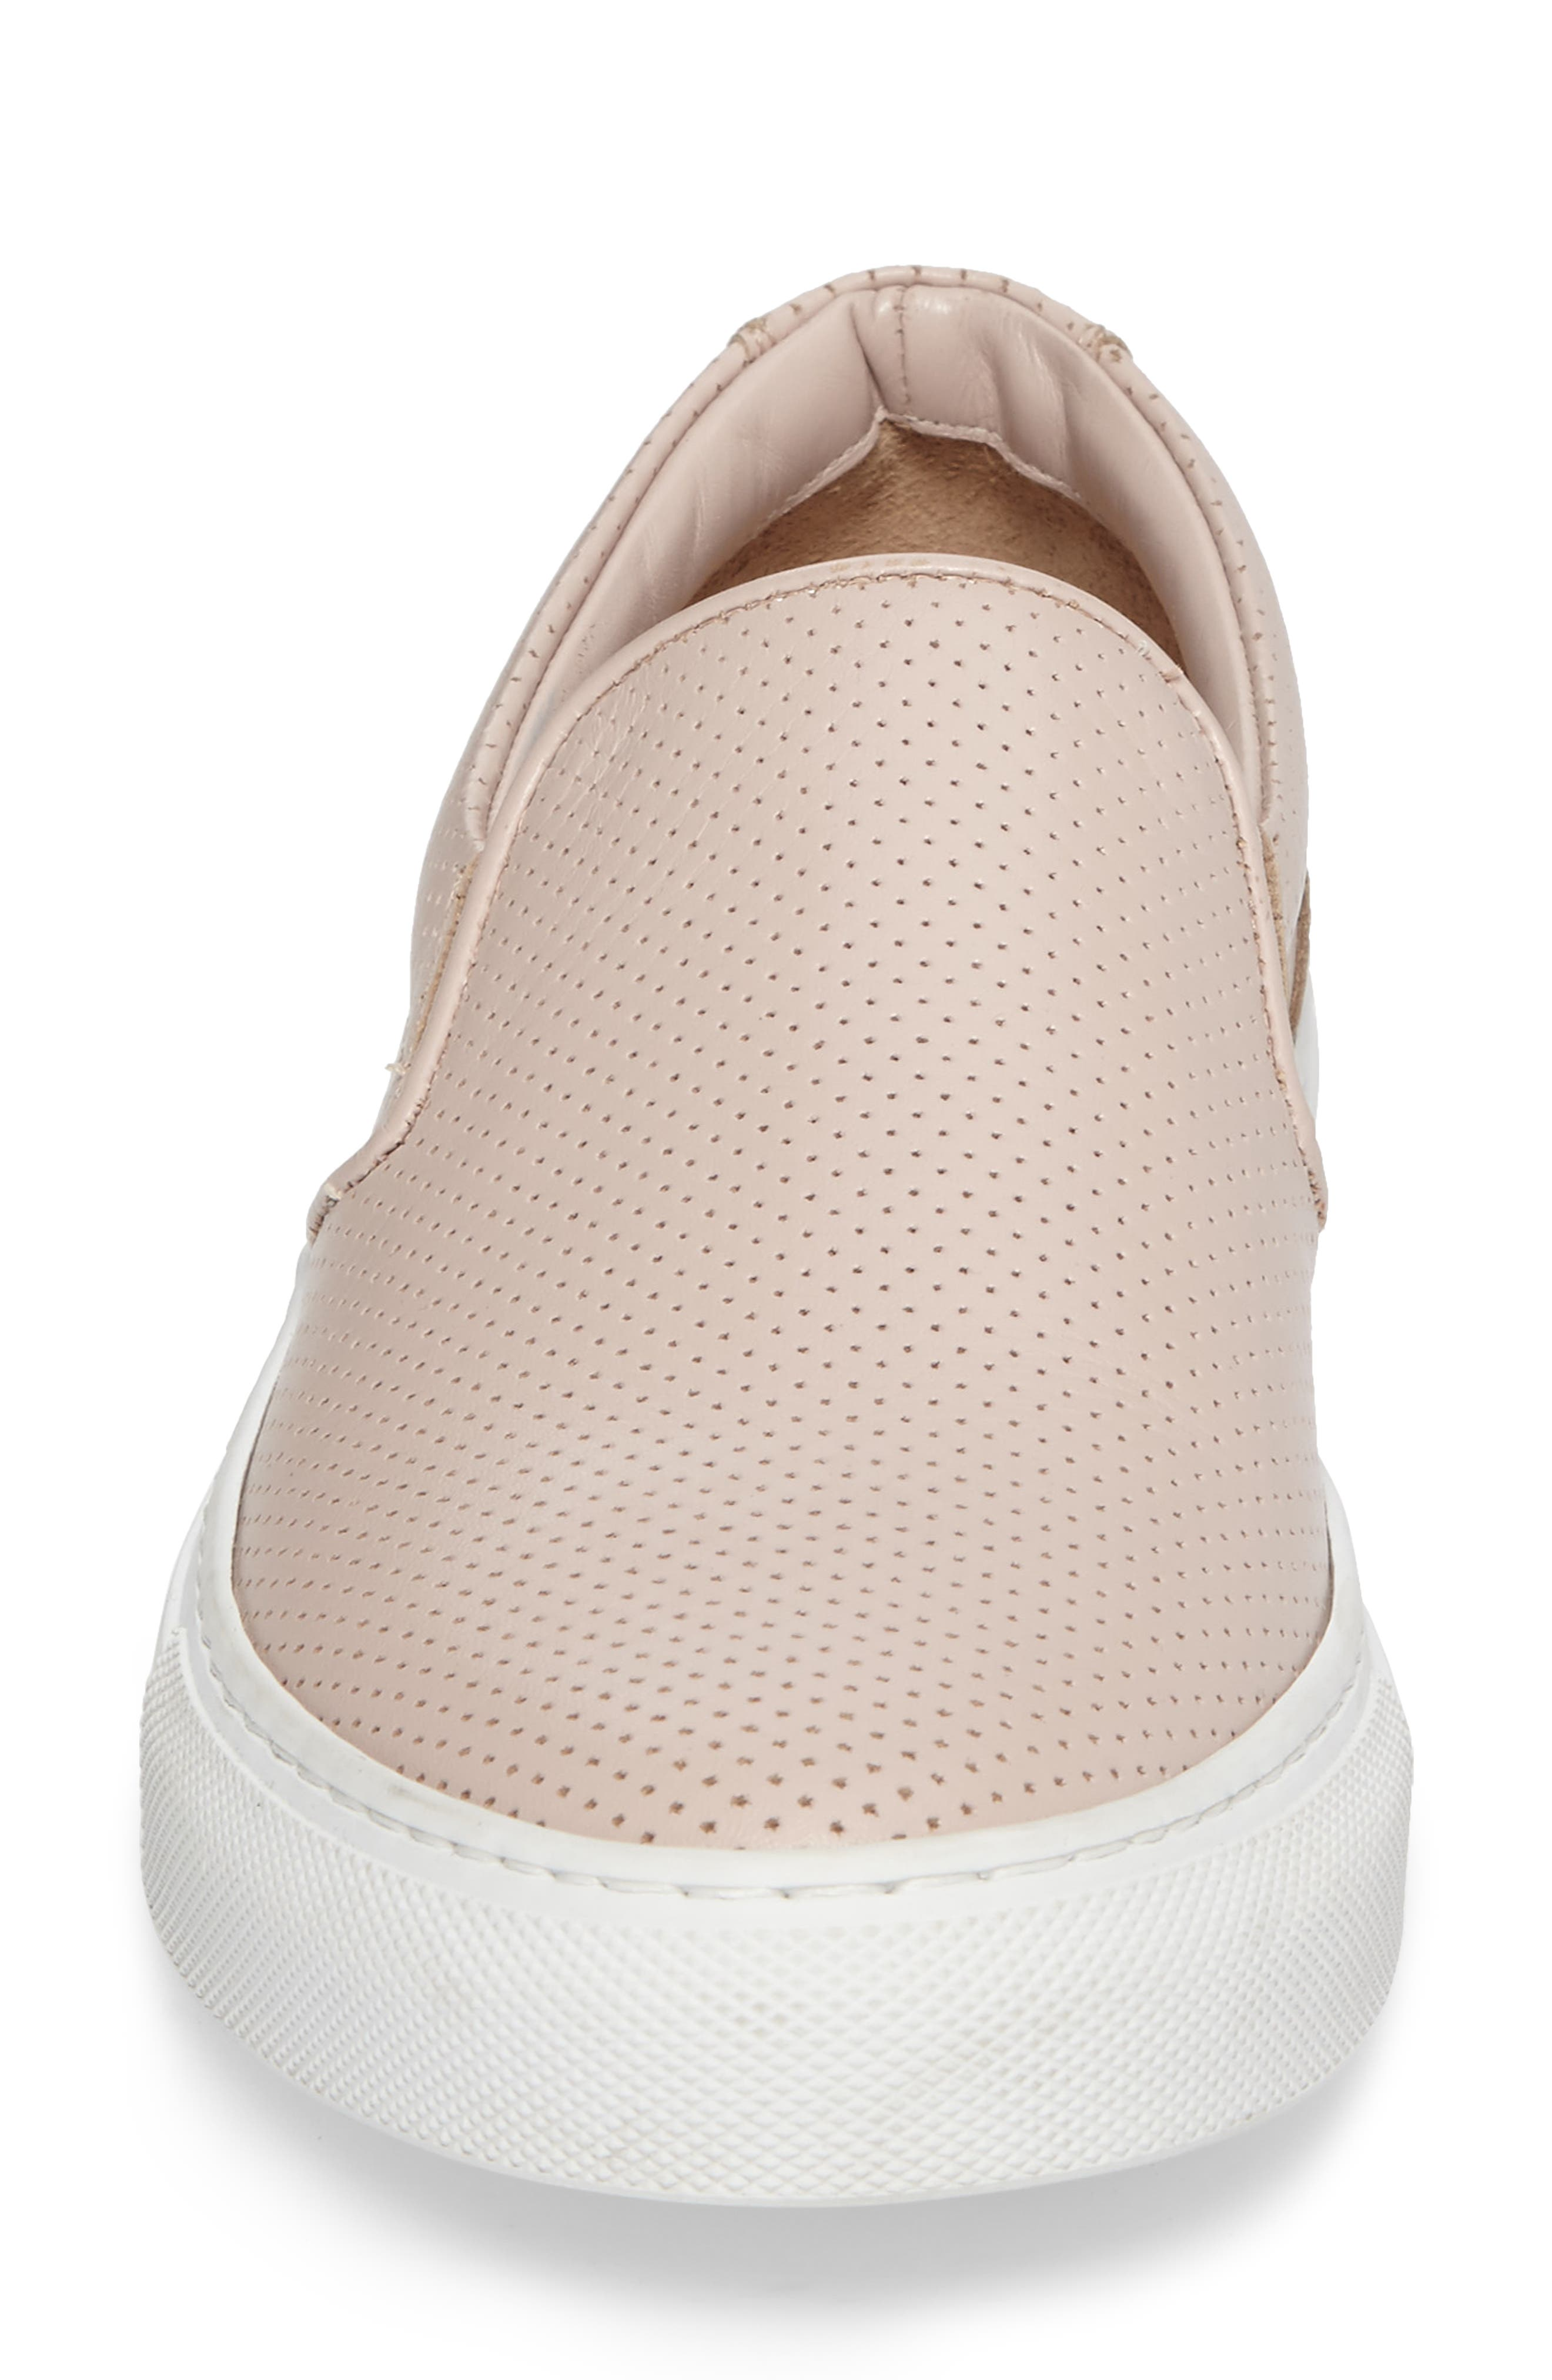 Wooster Slip-On Sneaker,                             Alternate thumbnail 4, color,                             Blush Perforated